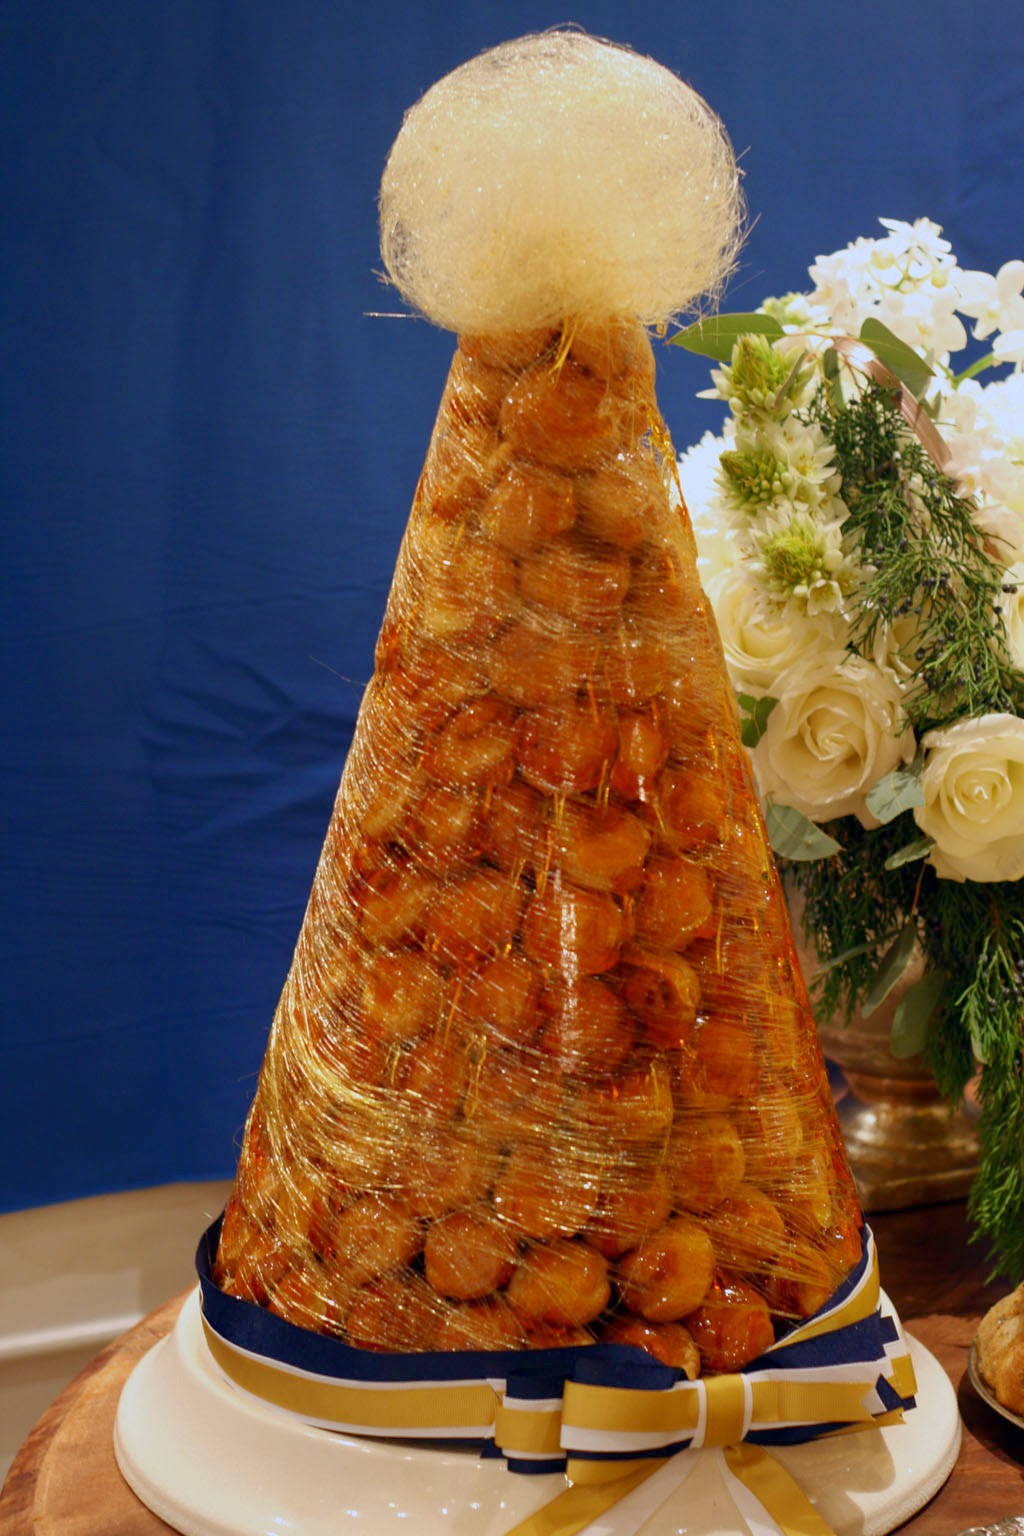 A mountain of Croquembouche wrapped in spun golden sugar threads.